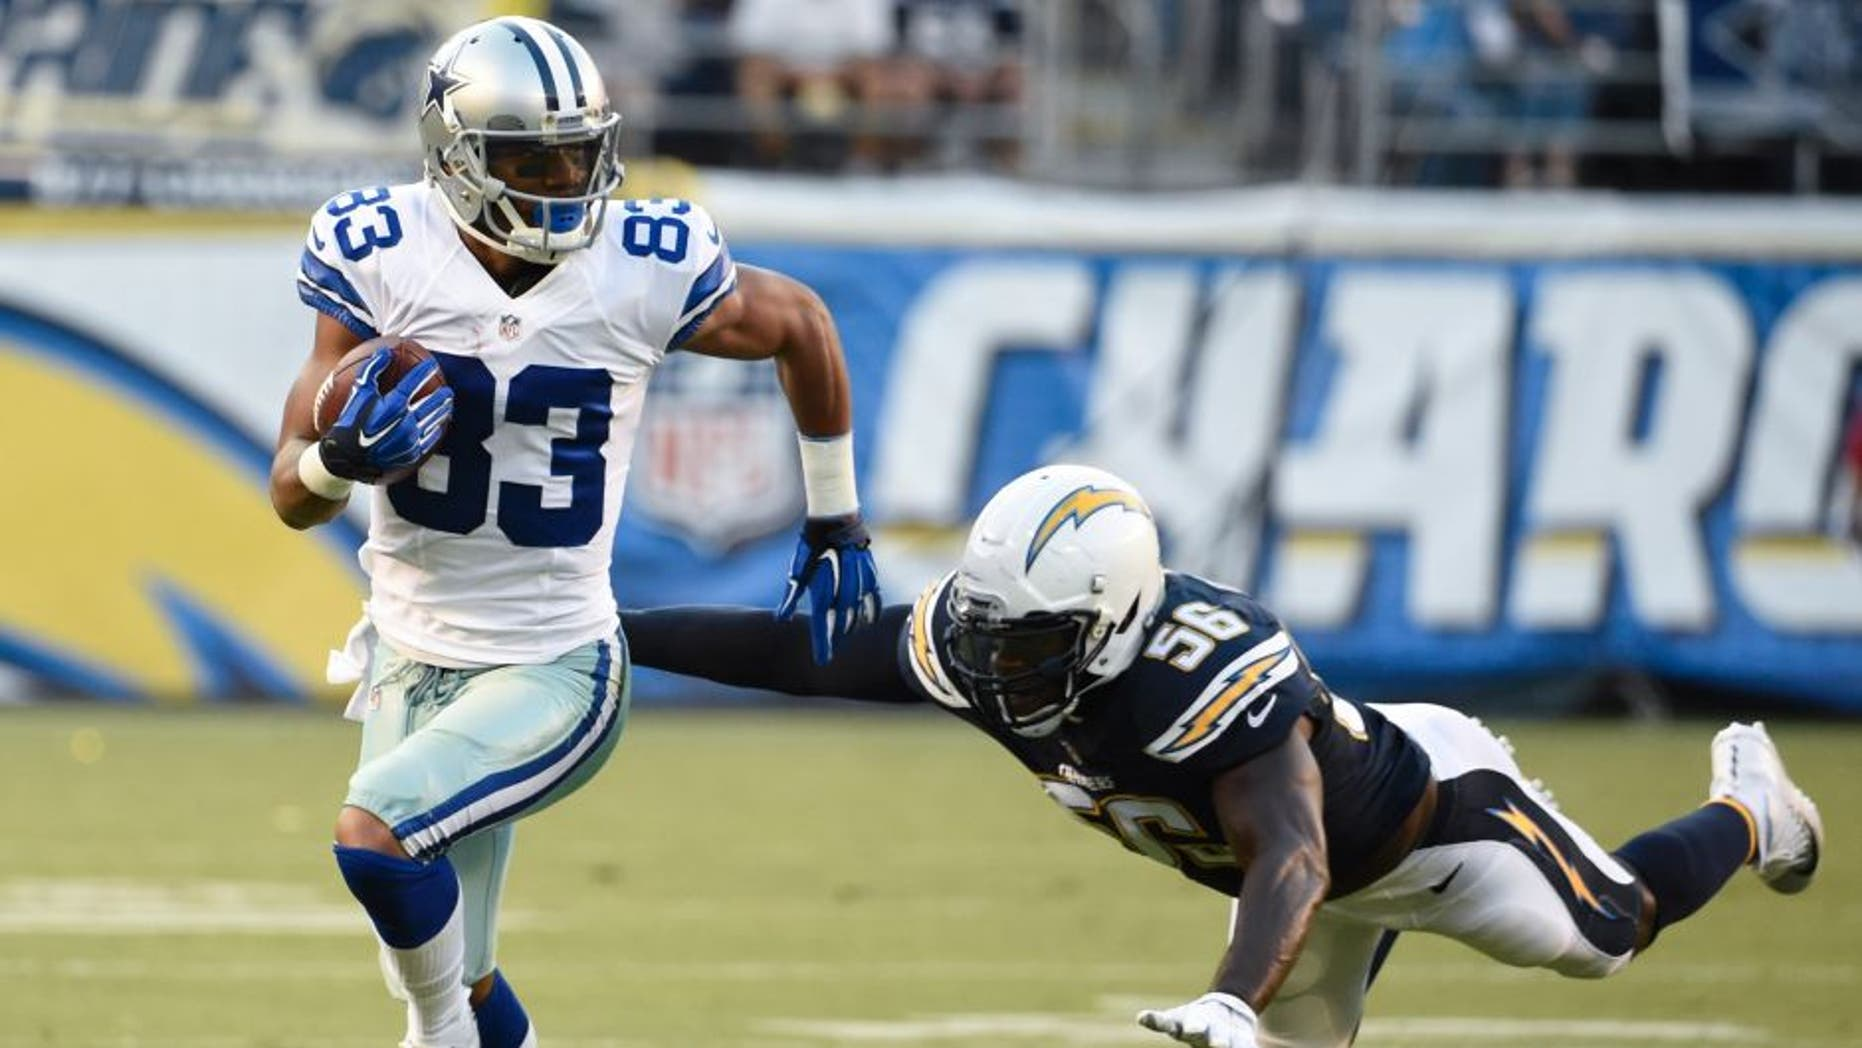 Dallas Cowboys wide receiver Terrance Williams runs upfield after a completion as San Diego Chargers inside linebacker Donald Butler defends during the first half of an NFL preseason football game Thursday, Aug. 13, 2015 in San Diego. (AP Photo/Denis Poroy)